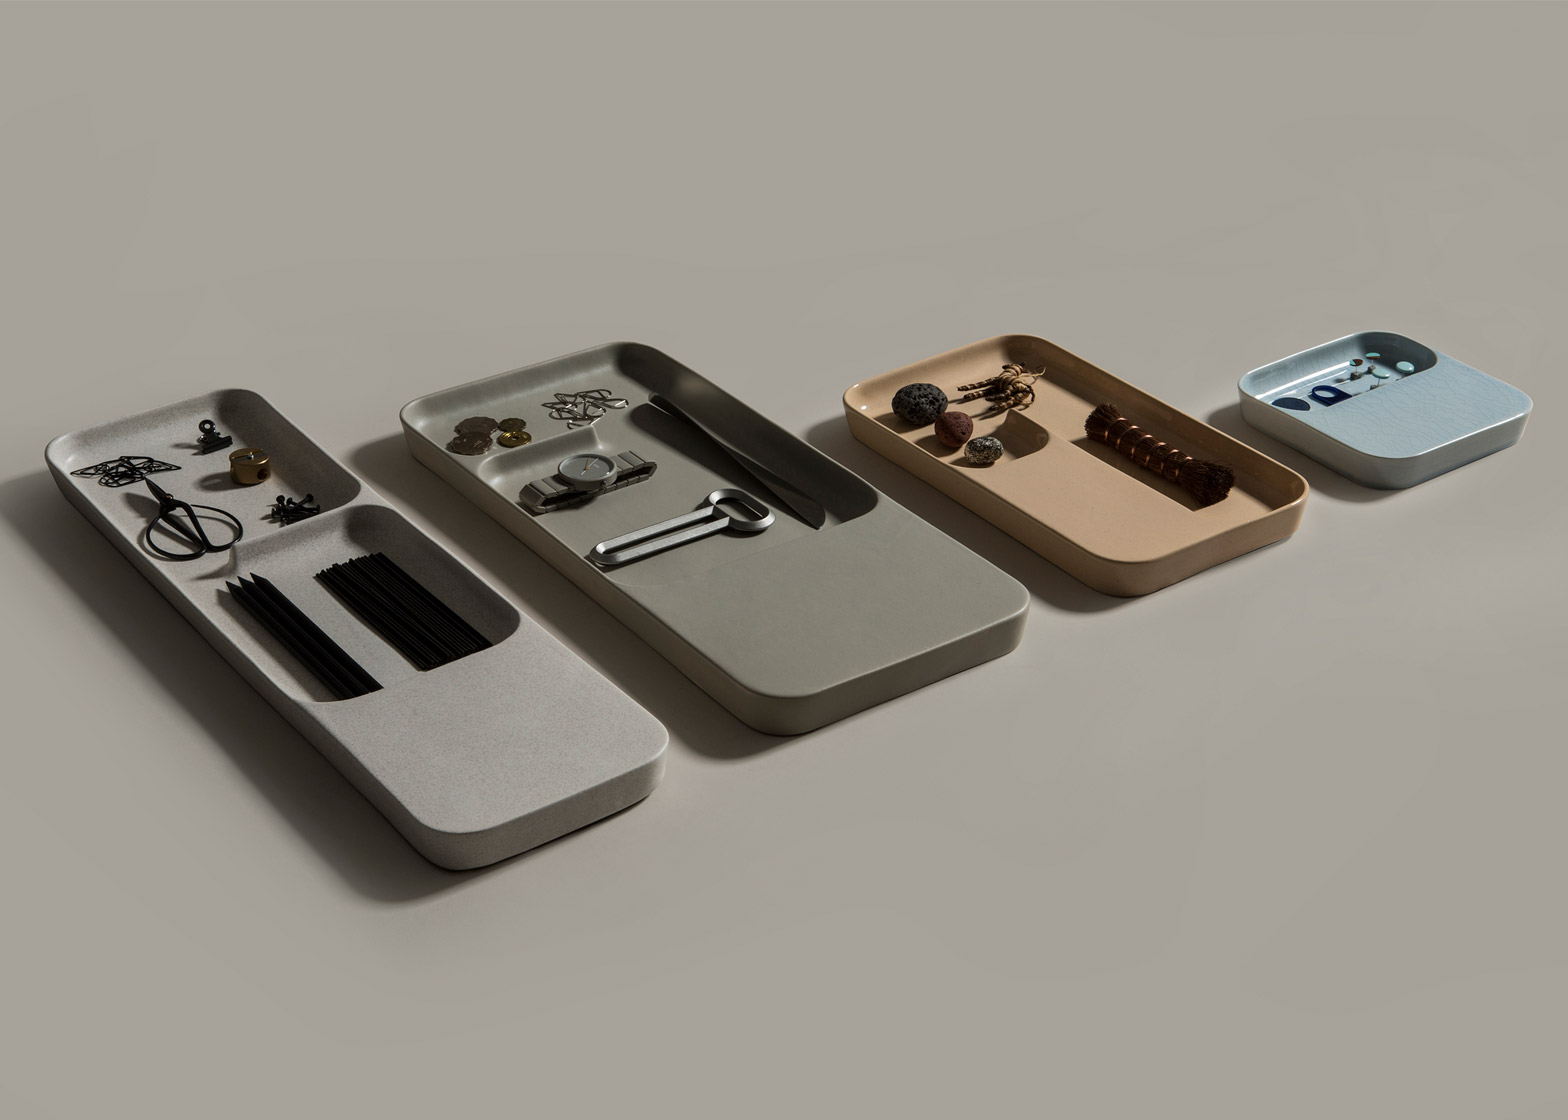 Ceramic Charge Tray's by Benjamin Hubert's brand Layer let you wirelessly charge your smartphone